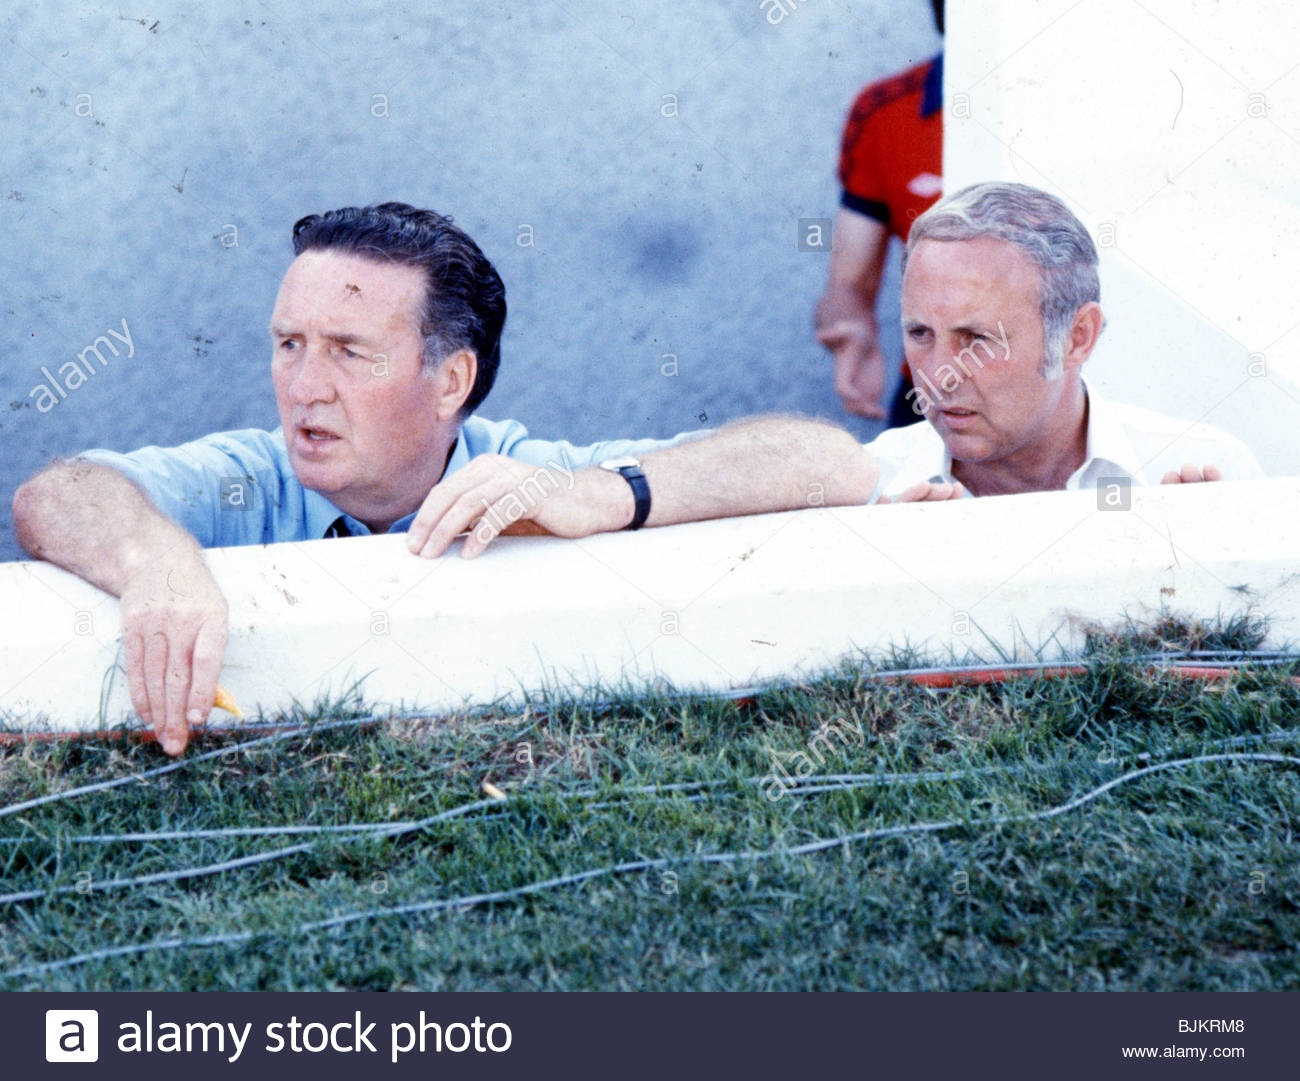 WORLD CUP 1982 SCOTLAND Manager Jock Stein and his assistant Jim McLean watch the Scotland team perform during the - Stock Image